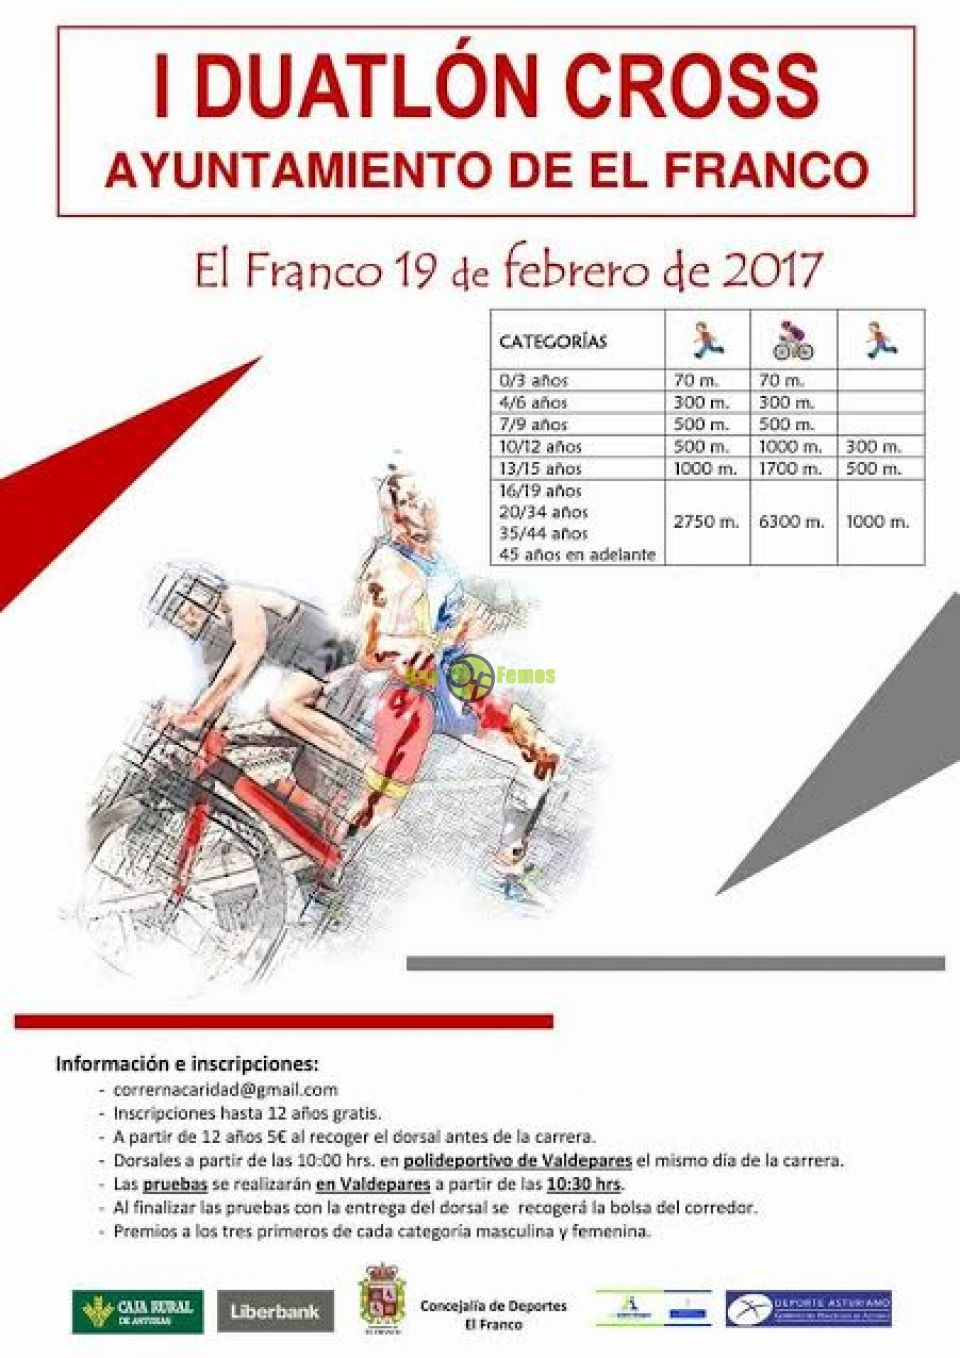 I Duatlón Cross 2017 en El Franco